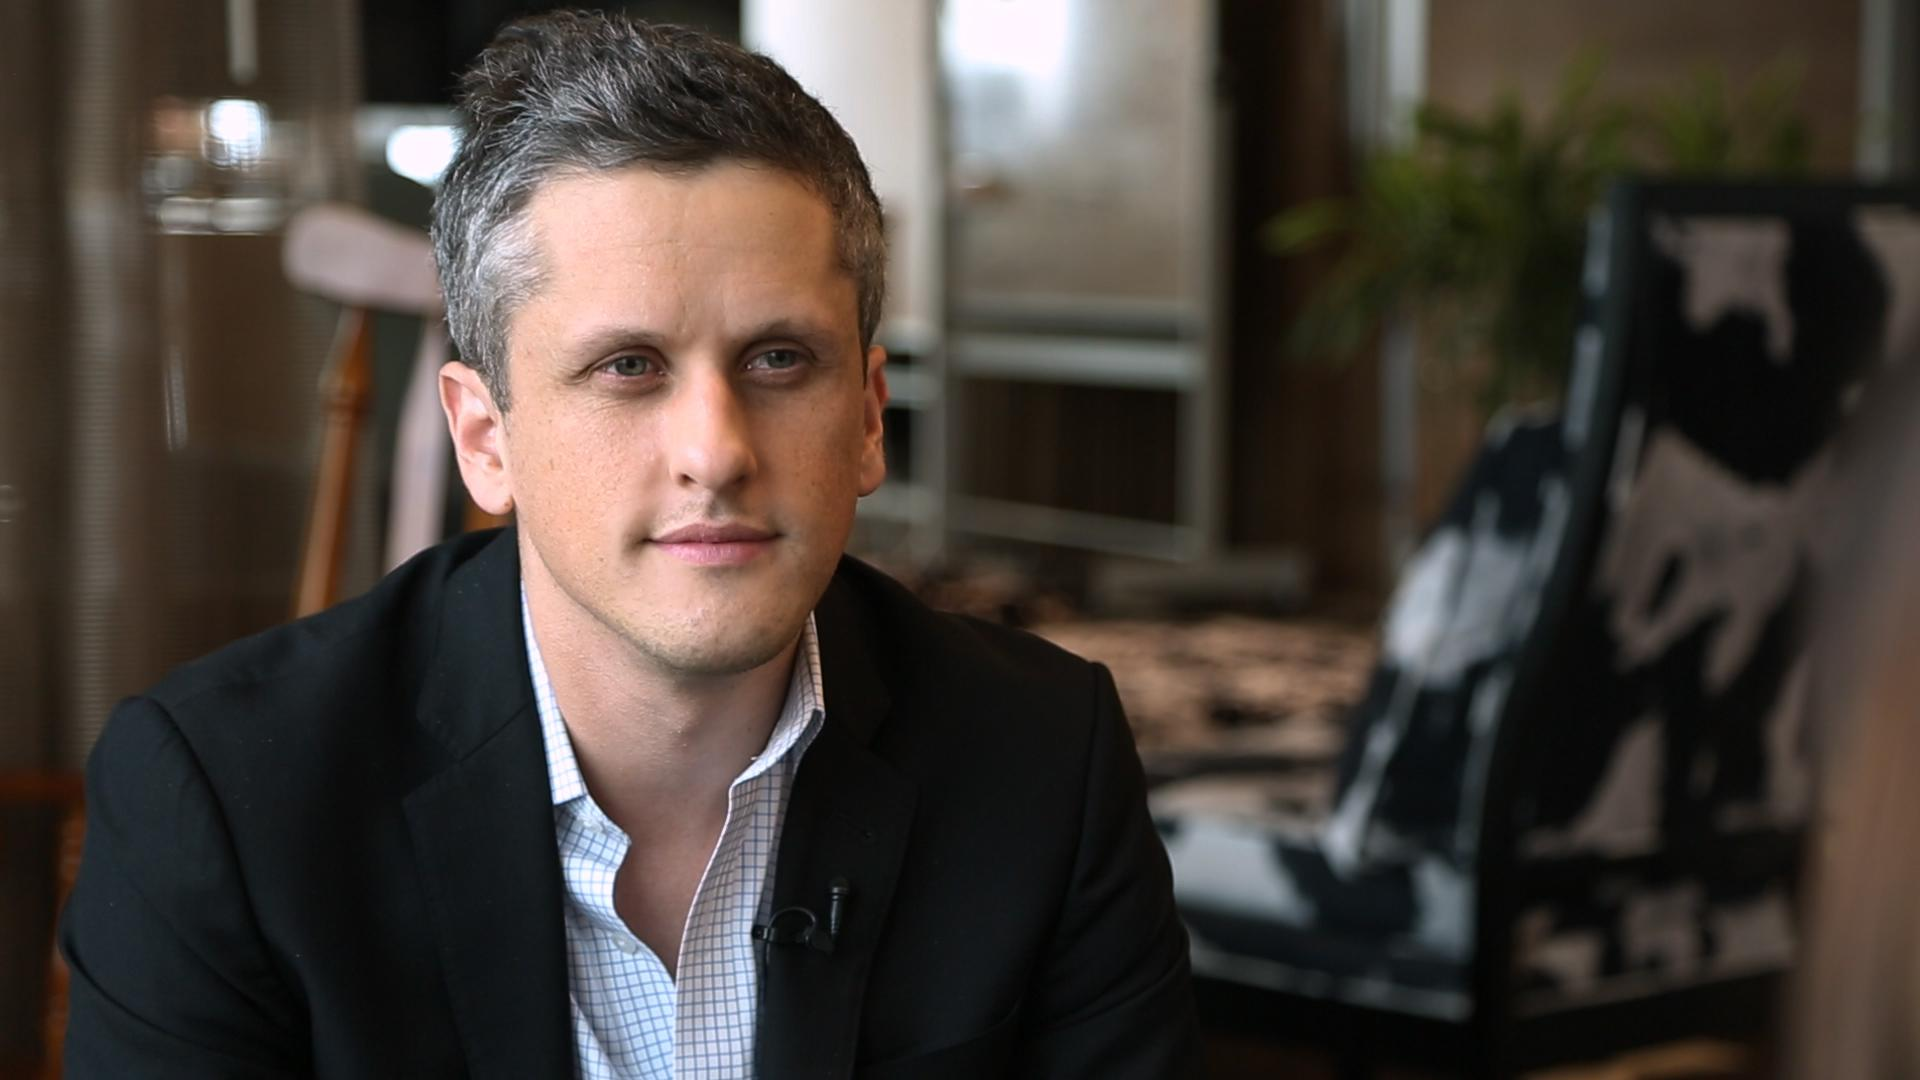 Levie explains what Trump means for tech